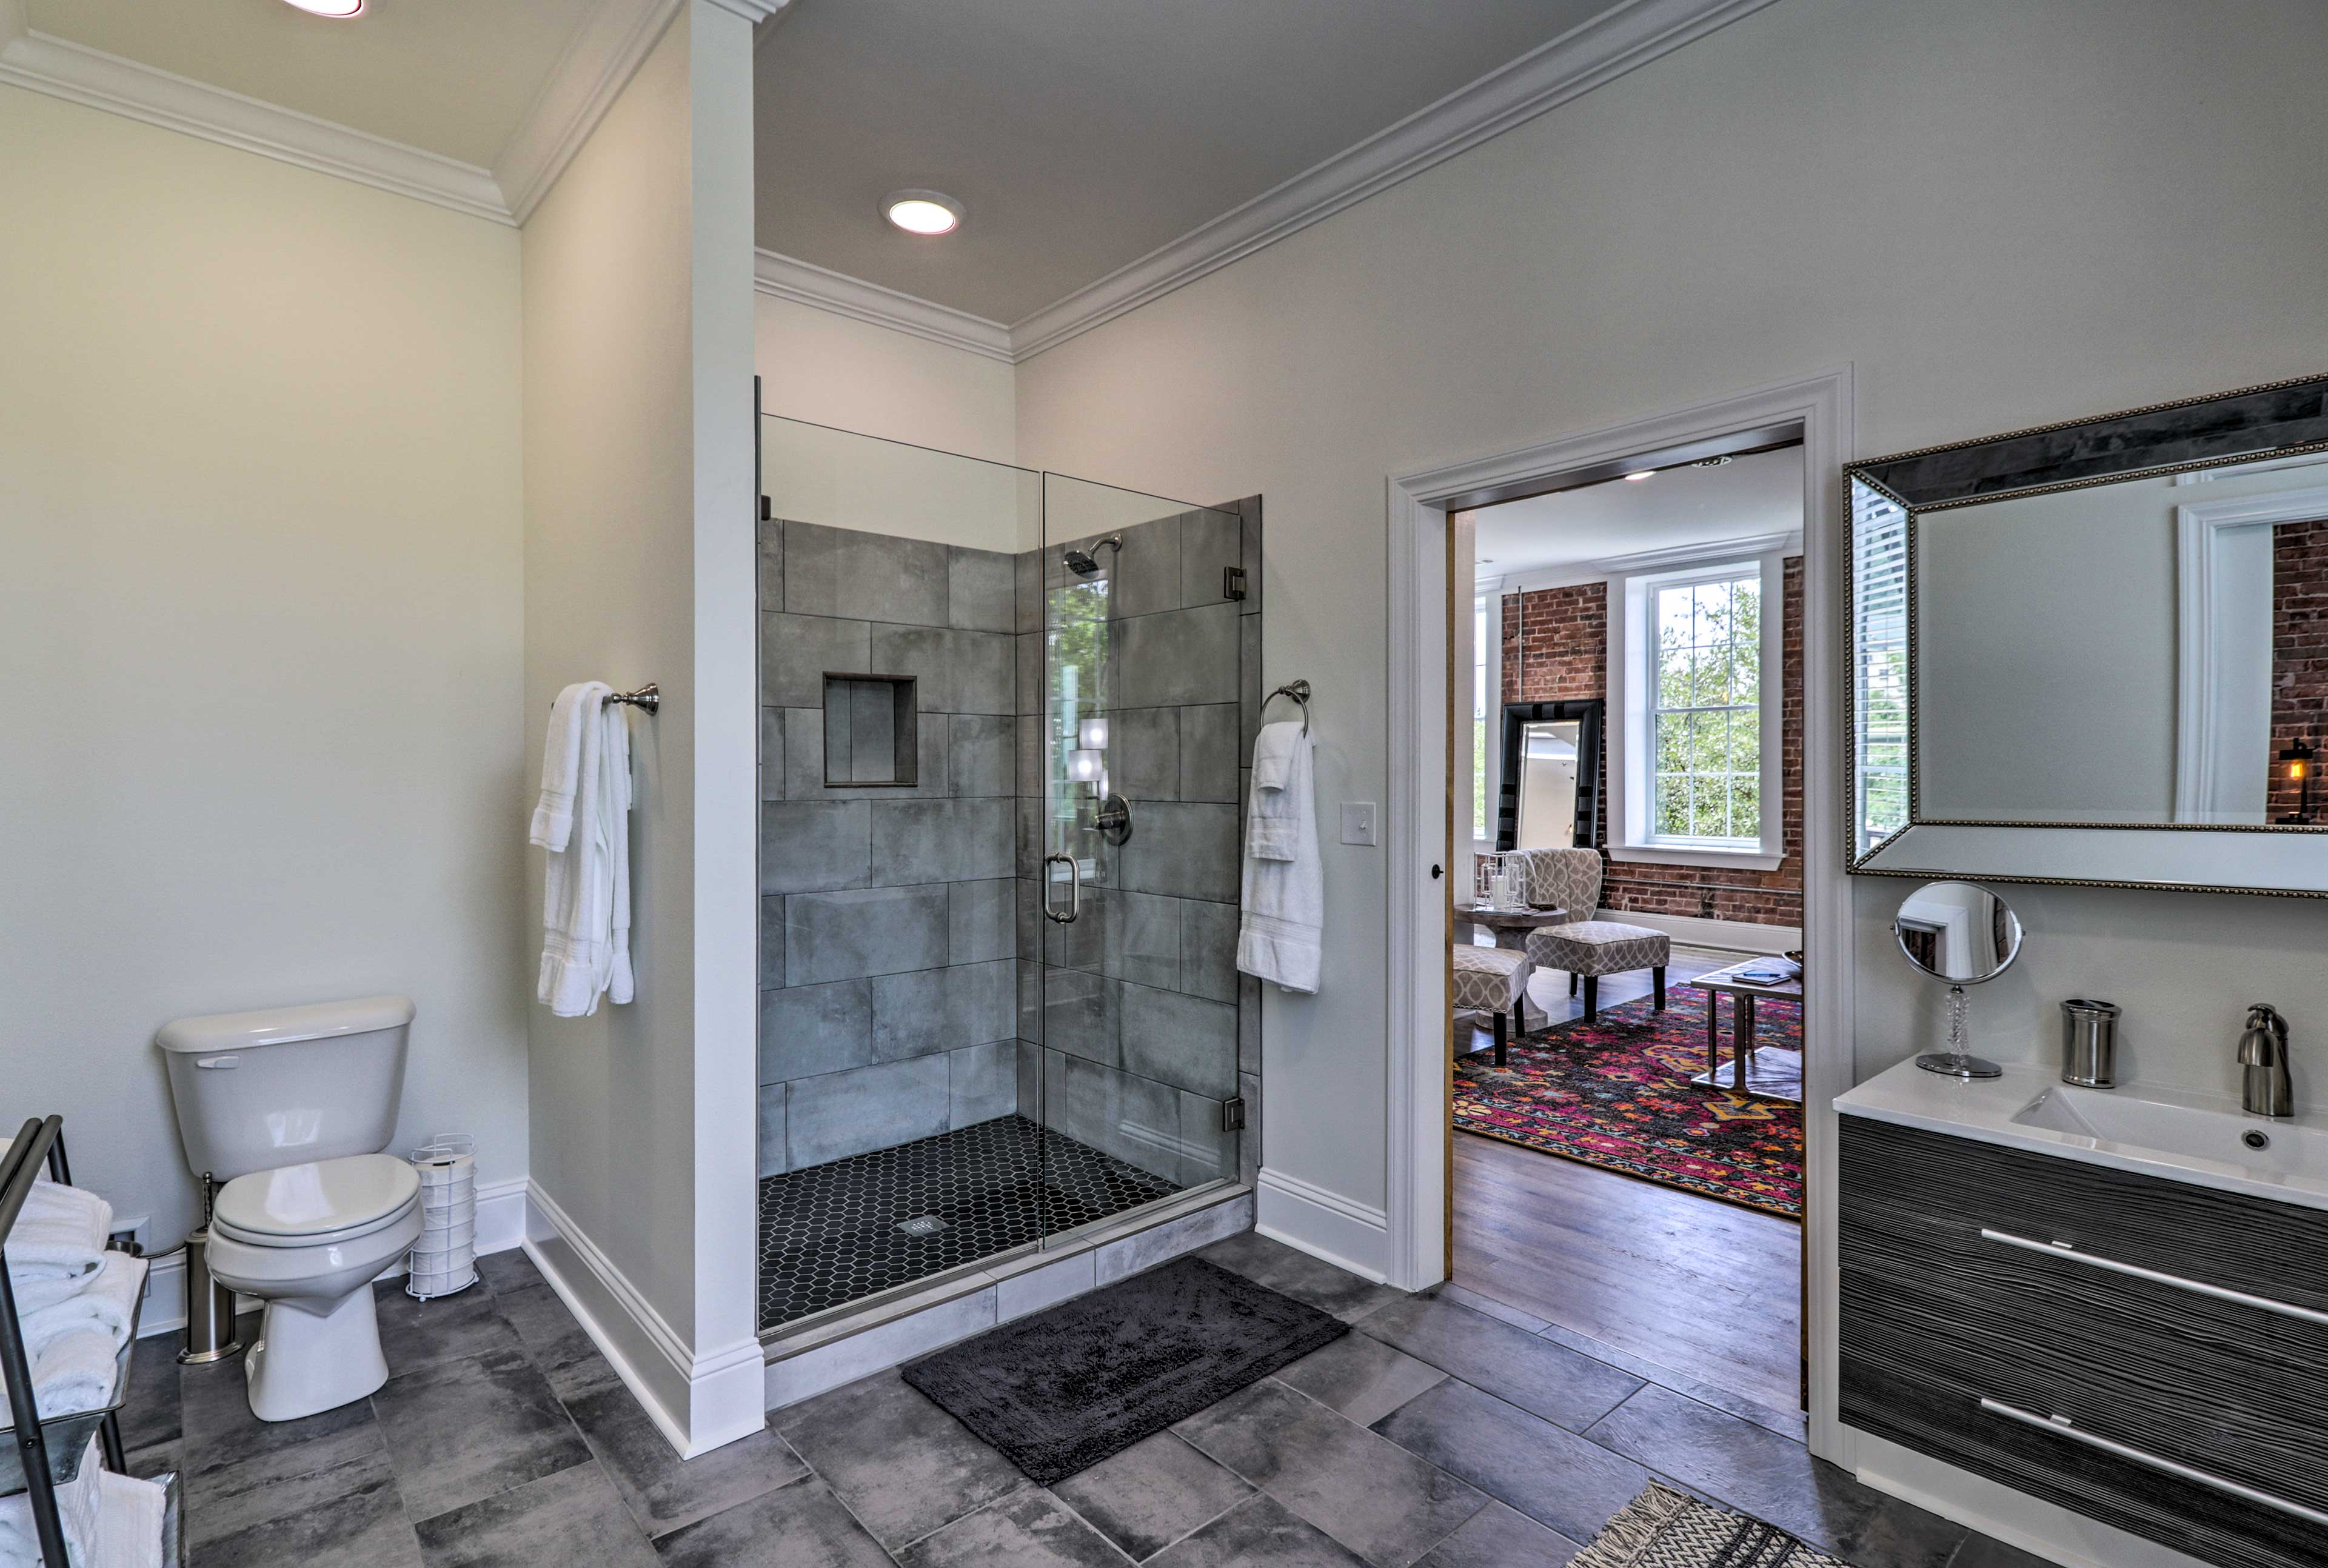 Freshen up in this spacious walk-in shower.